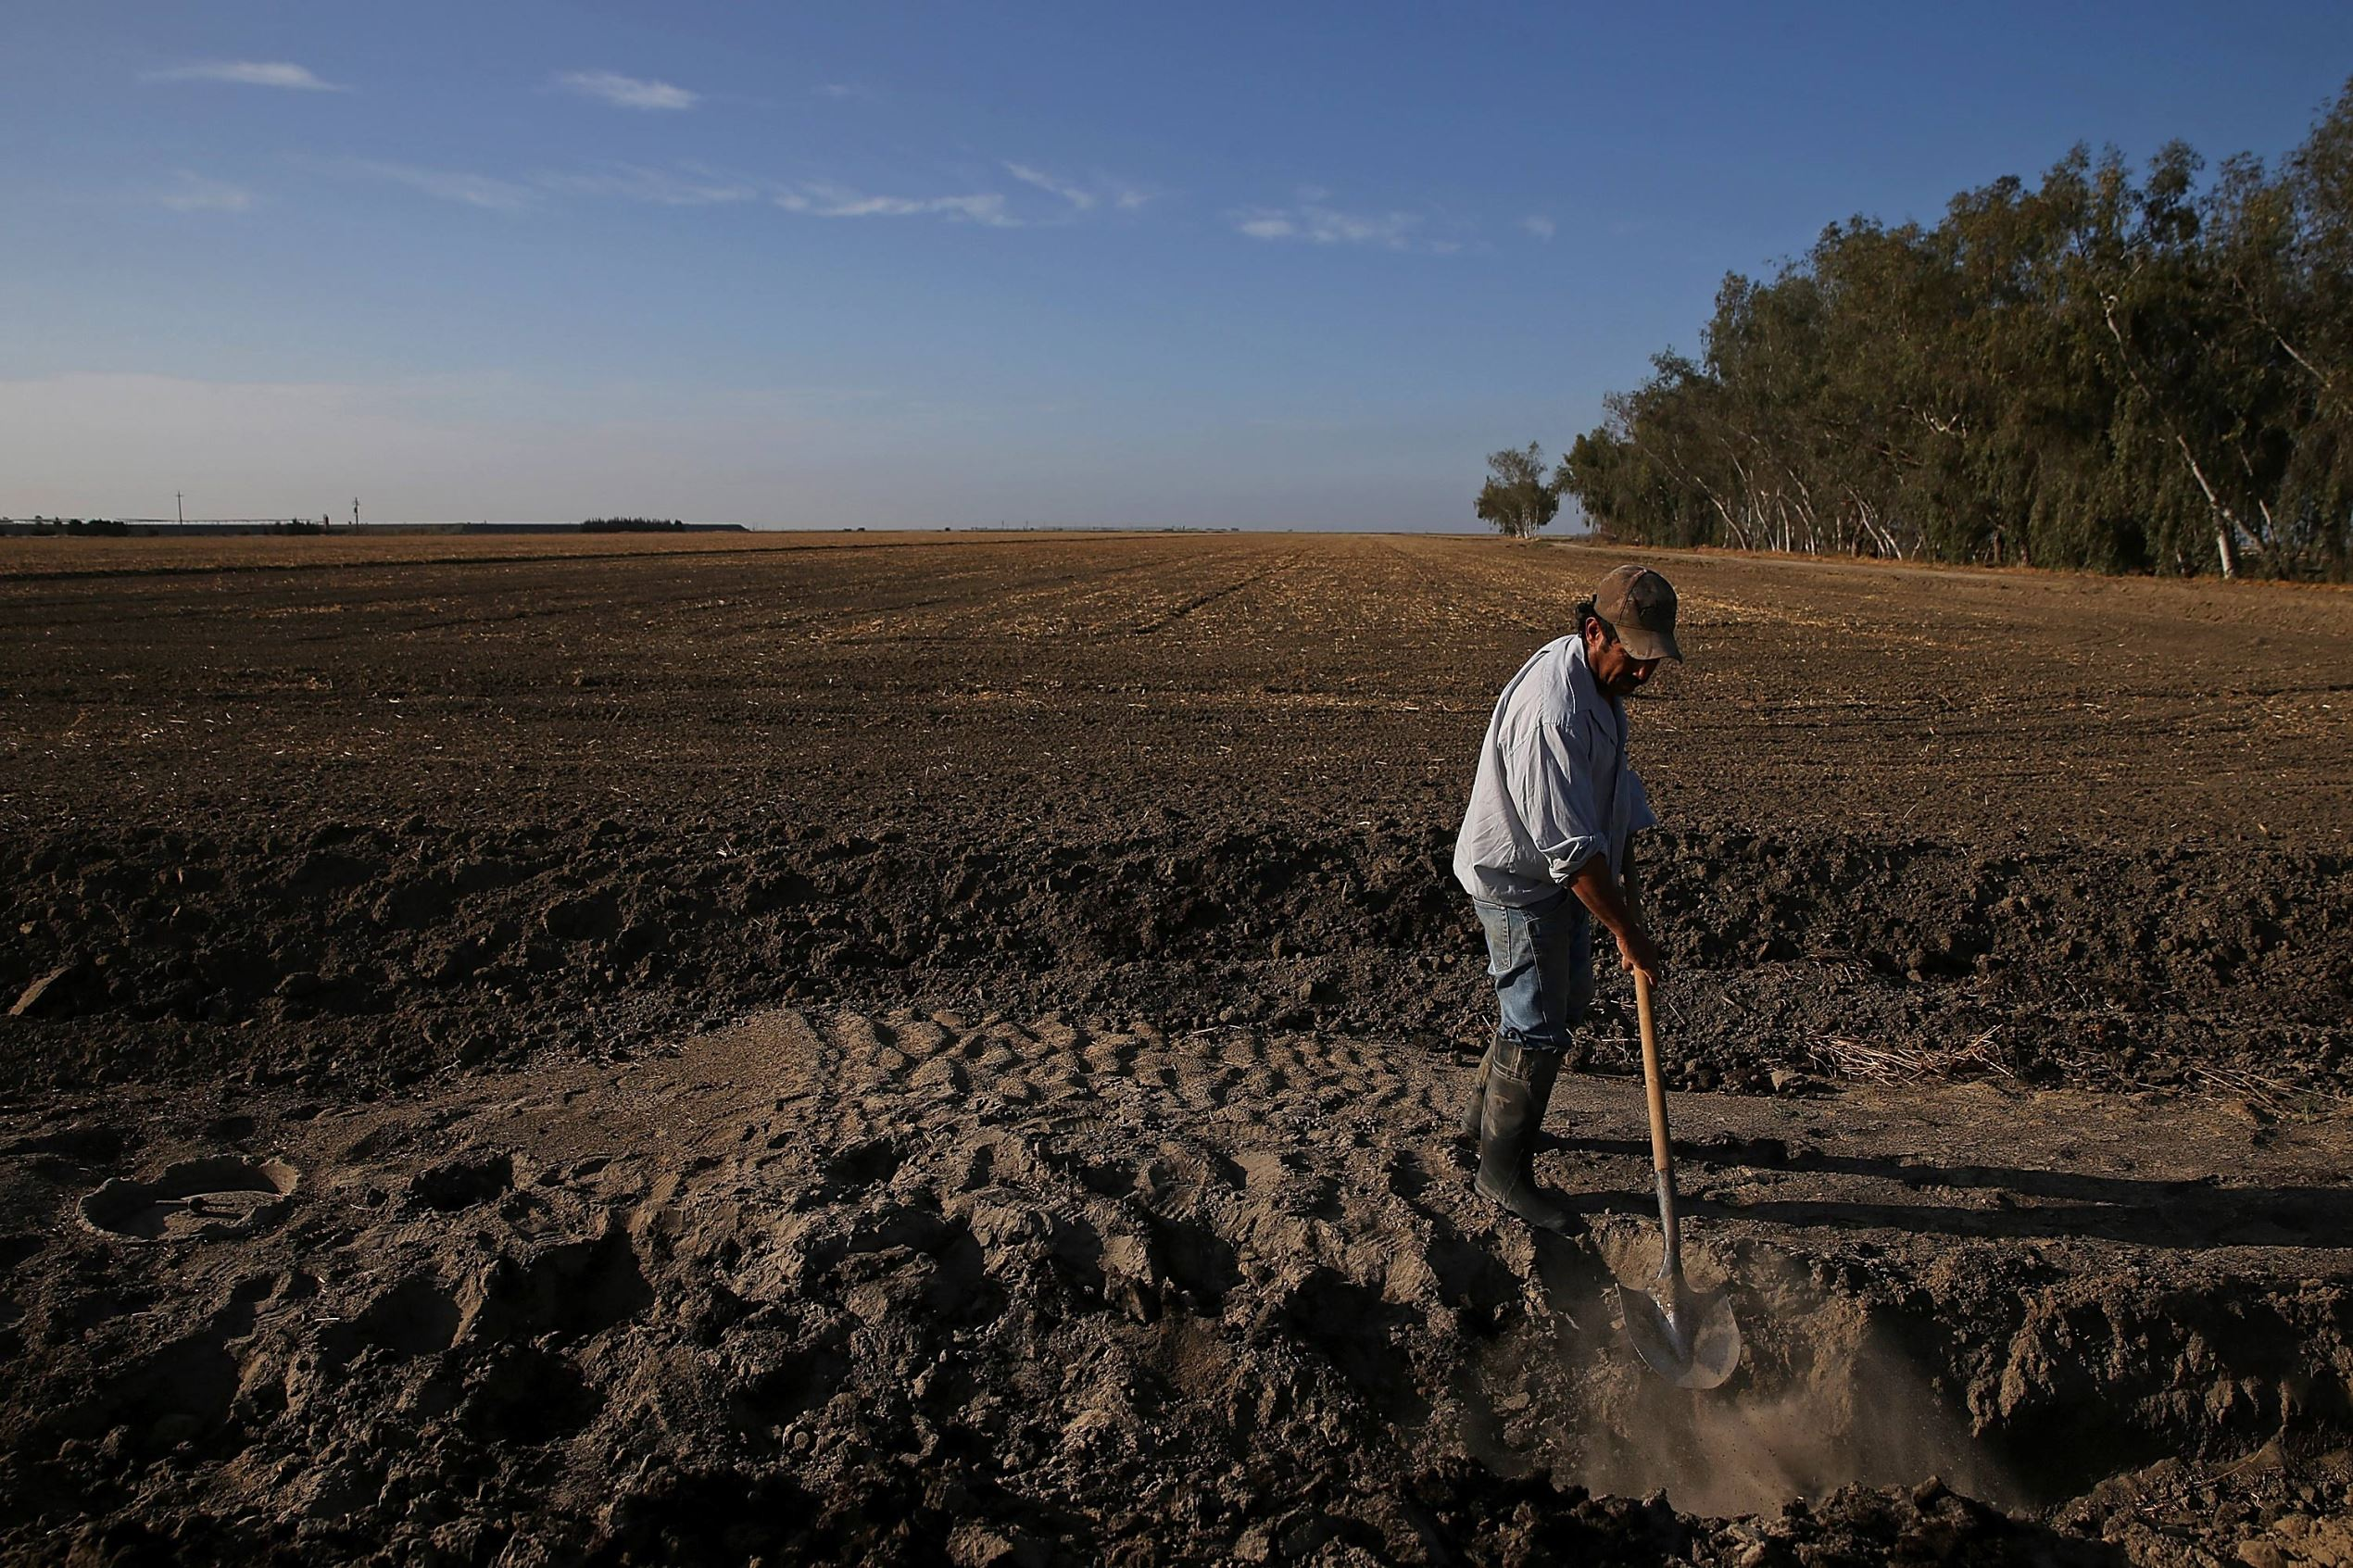 A worker digs a ditch next to a fallow field on April 24, 2015 in Hanford, California. As California enters its fourth year of severe drought, farmers in the Central Valley are struggling to keep crops watered as wells run dry and government water allocations have been reduced or terminated. Many have opted to leave acres of their fields fallow.